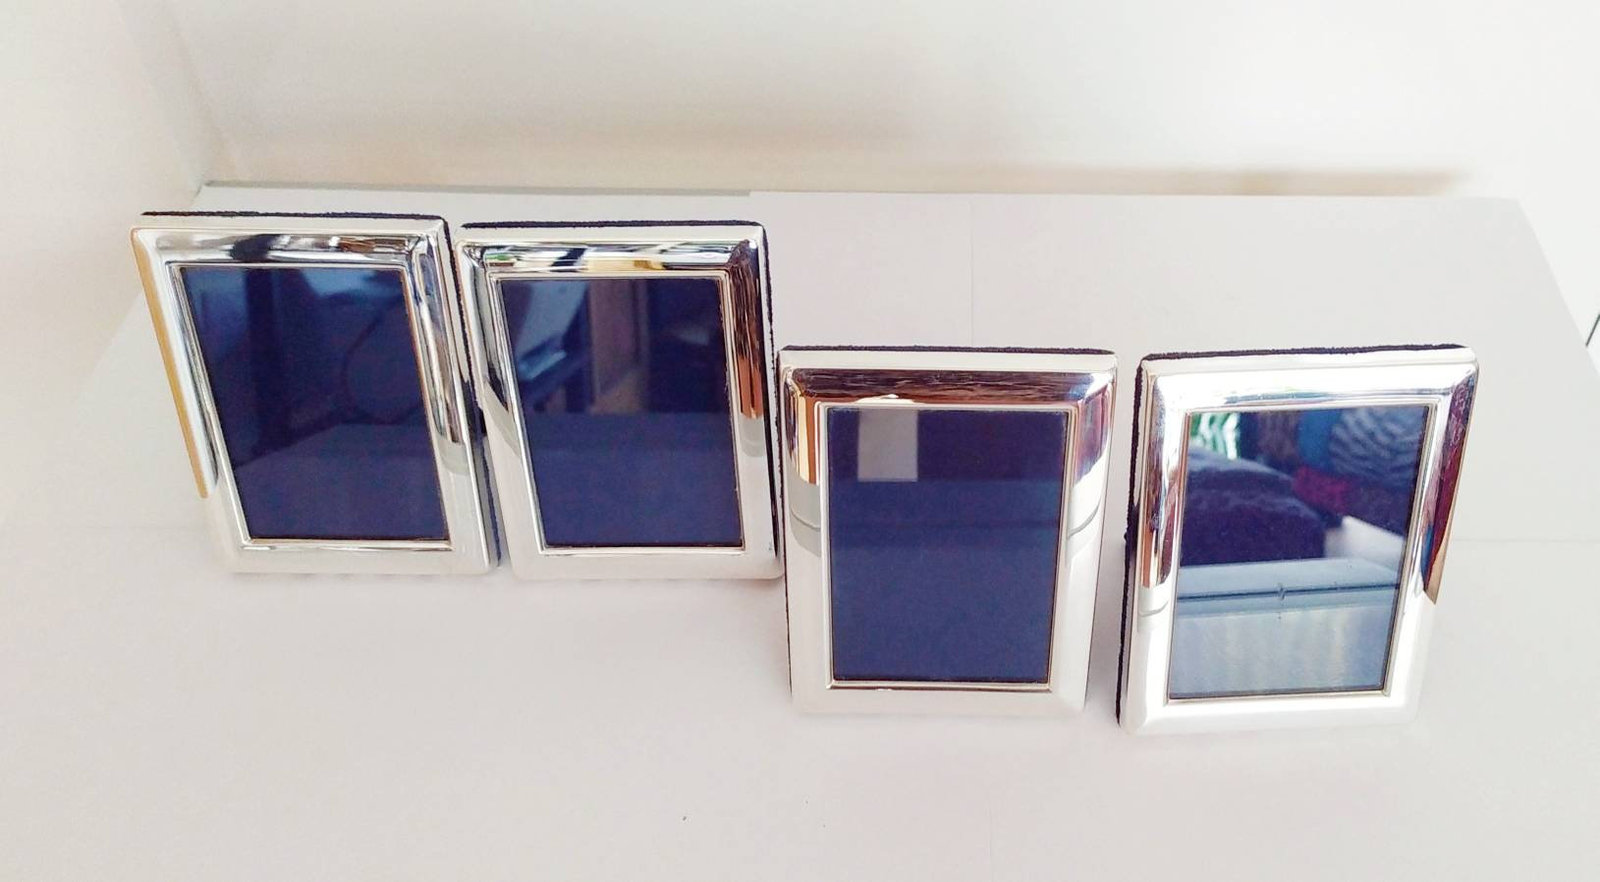 Sterling Silver Photo Frame 3.5 X 4 Inches Set of 4 Pieces - $375.69